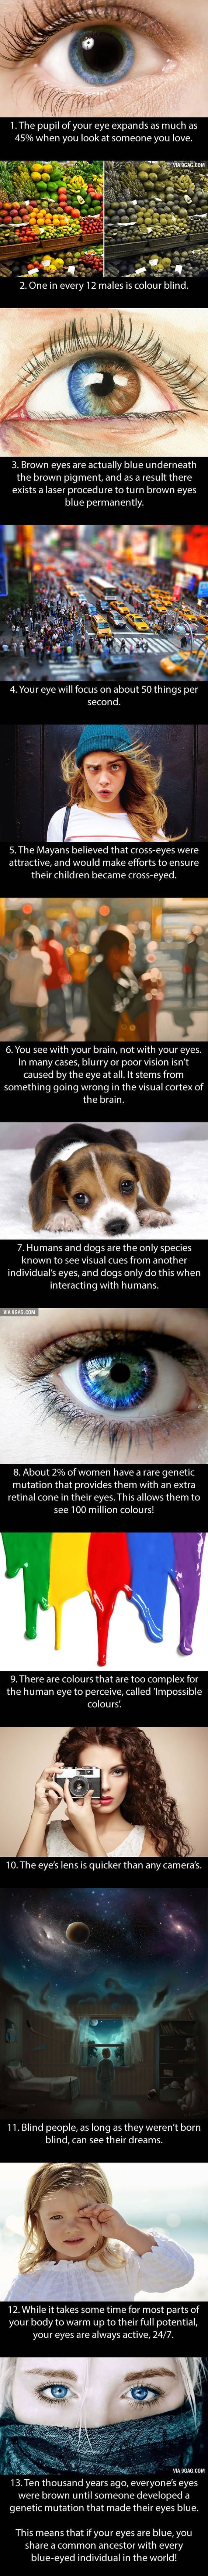 13 incredible facts about your eyes! #health #wellness #eyes